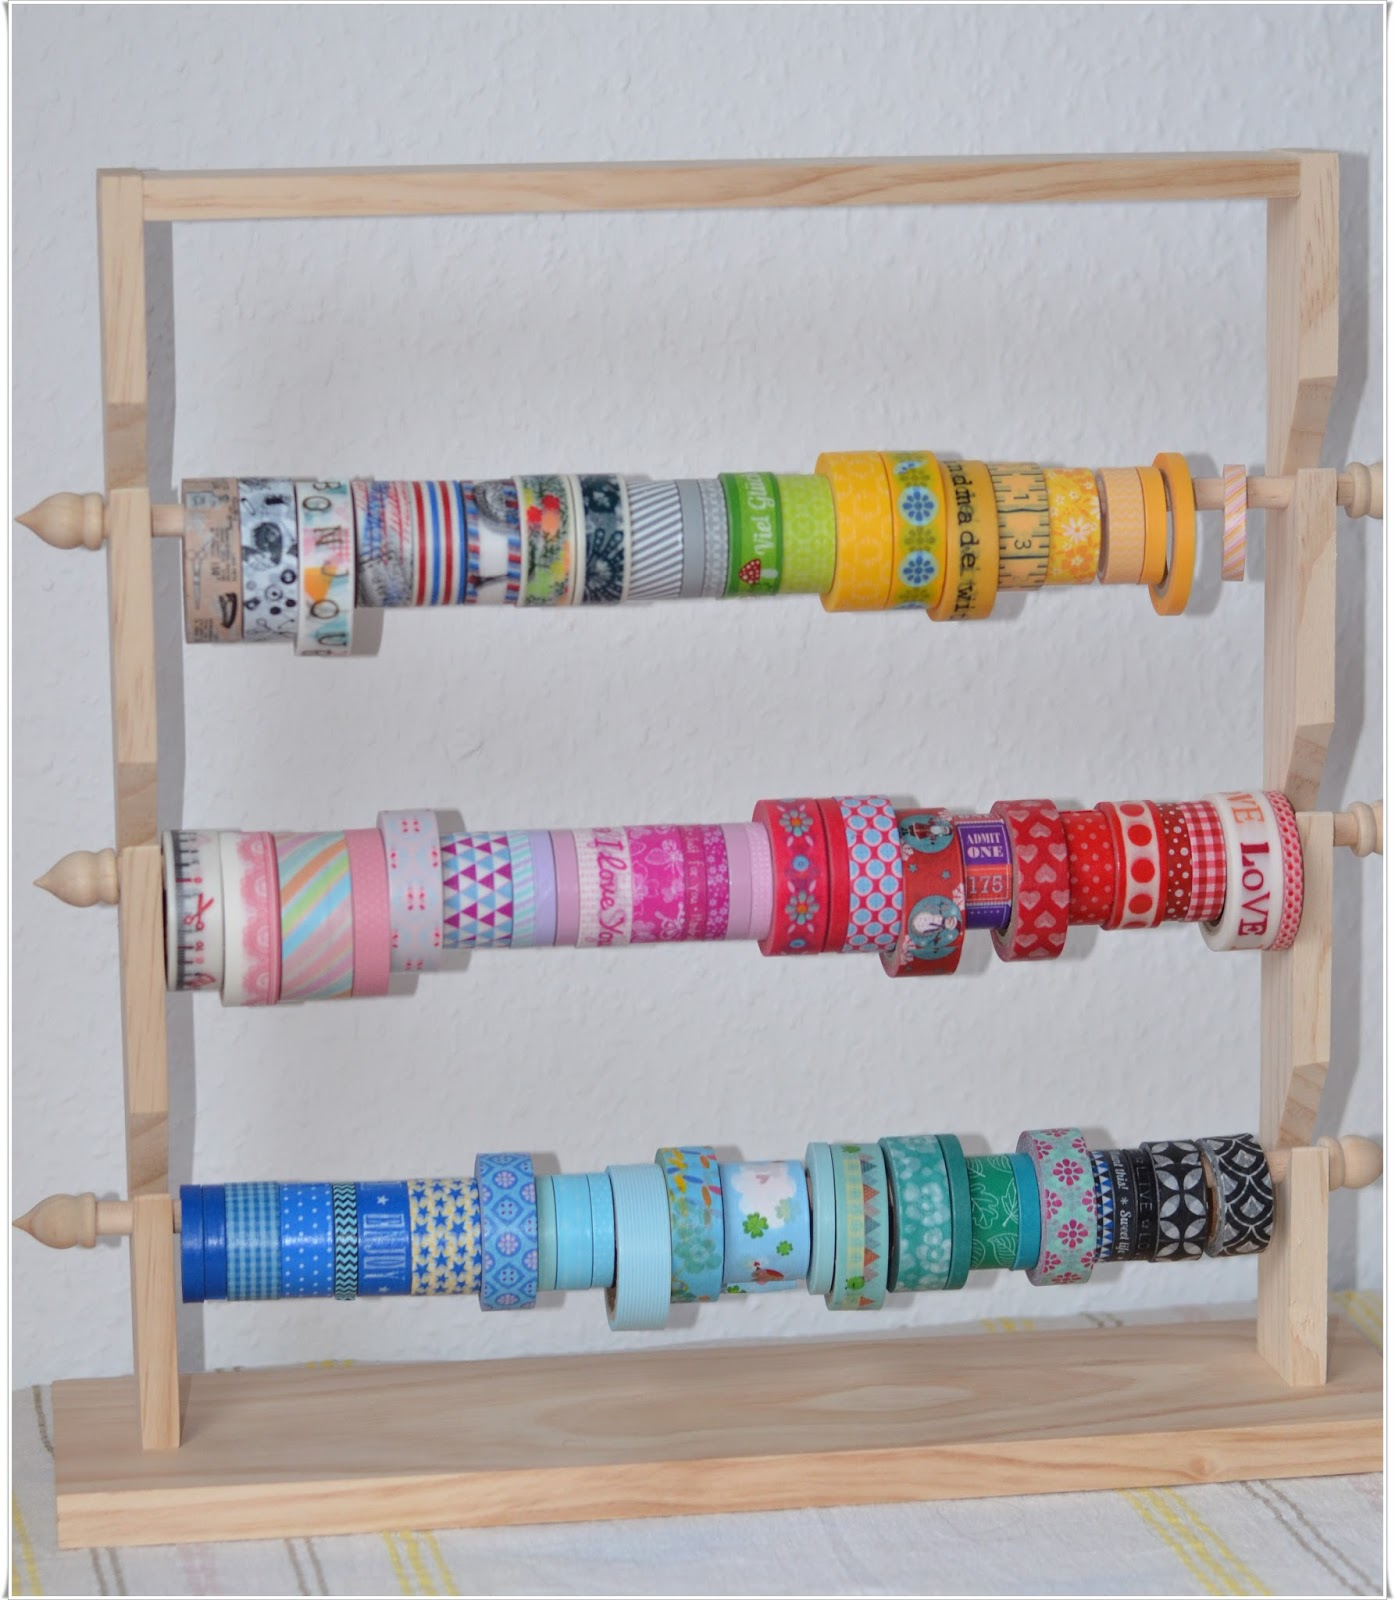 Was Ist Washi Tape Washi Tapes Was Soll Ich Damit Washi Tape